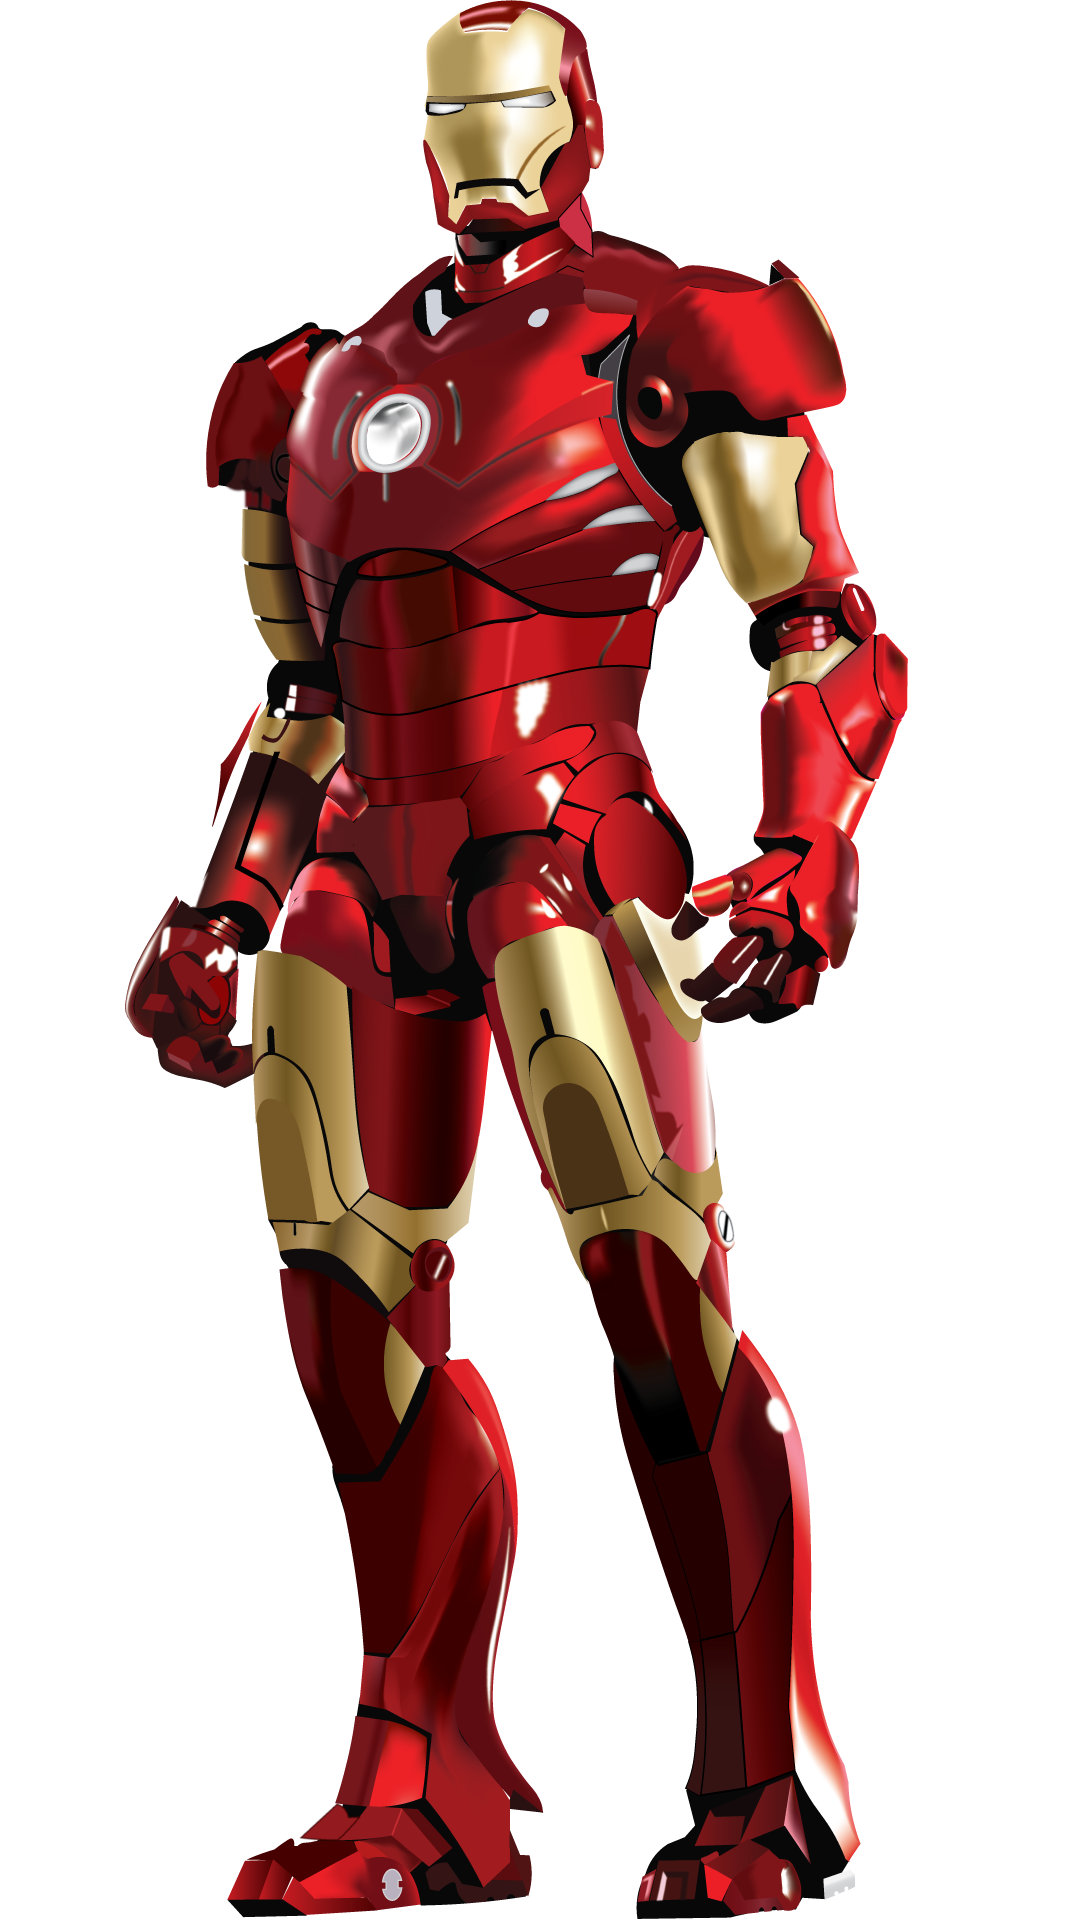 Softwaretraining-Iron-man-Mark-3---Casper-Nouwens-MVO1A---Copy